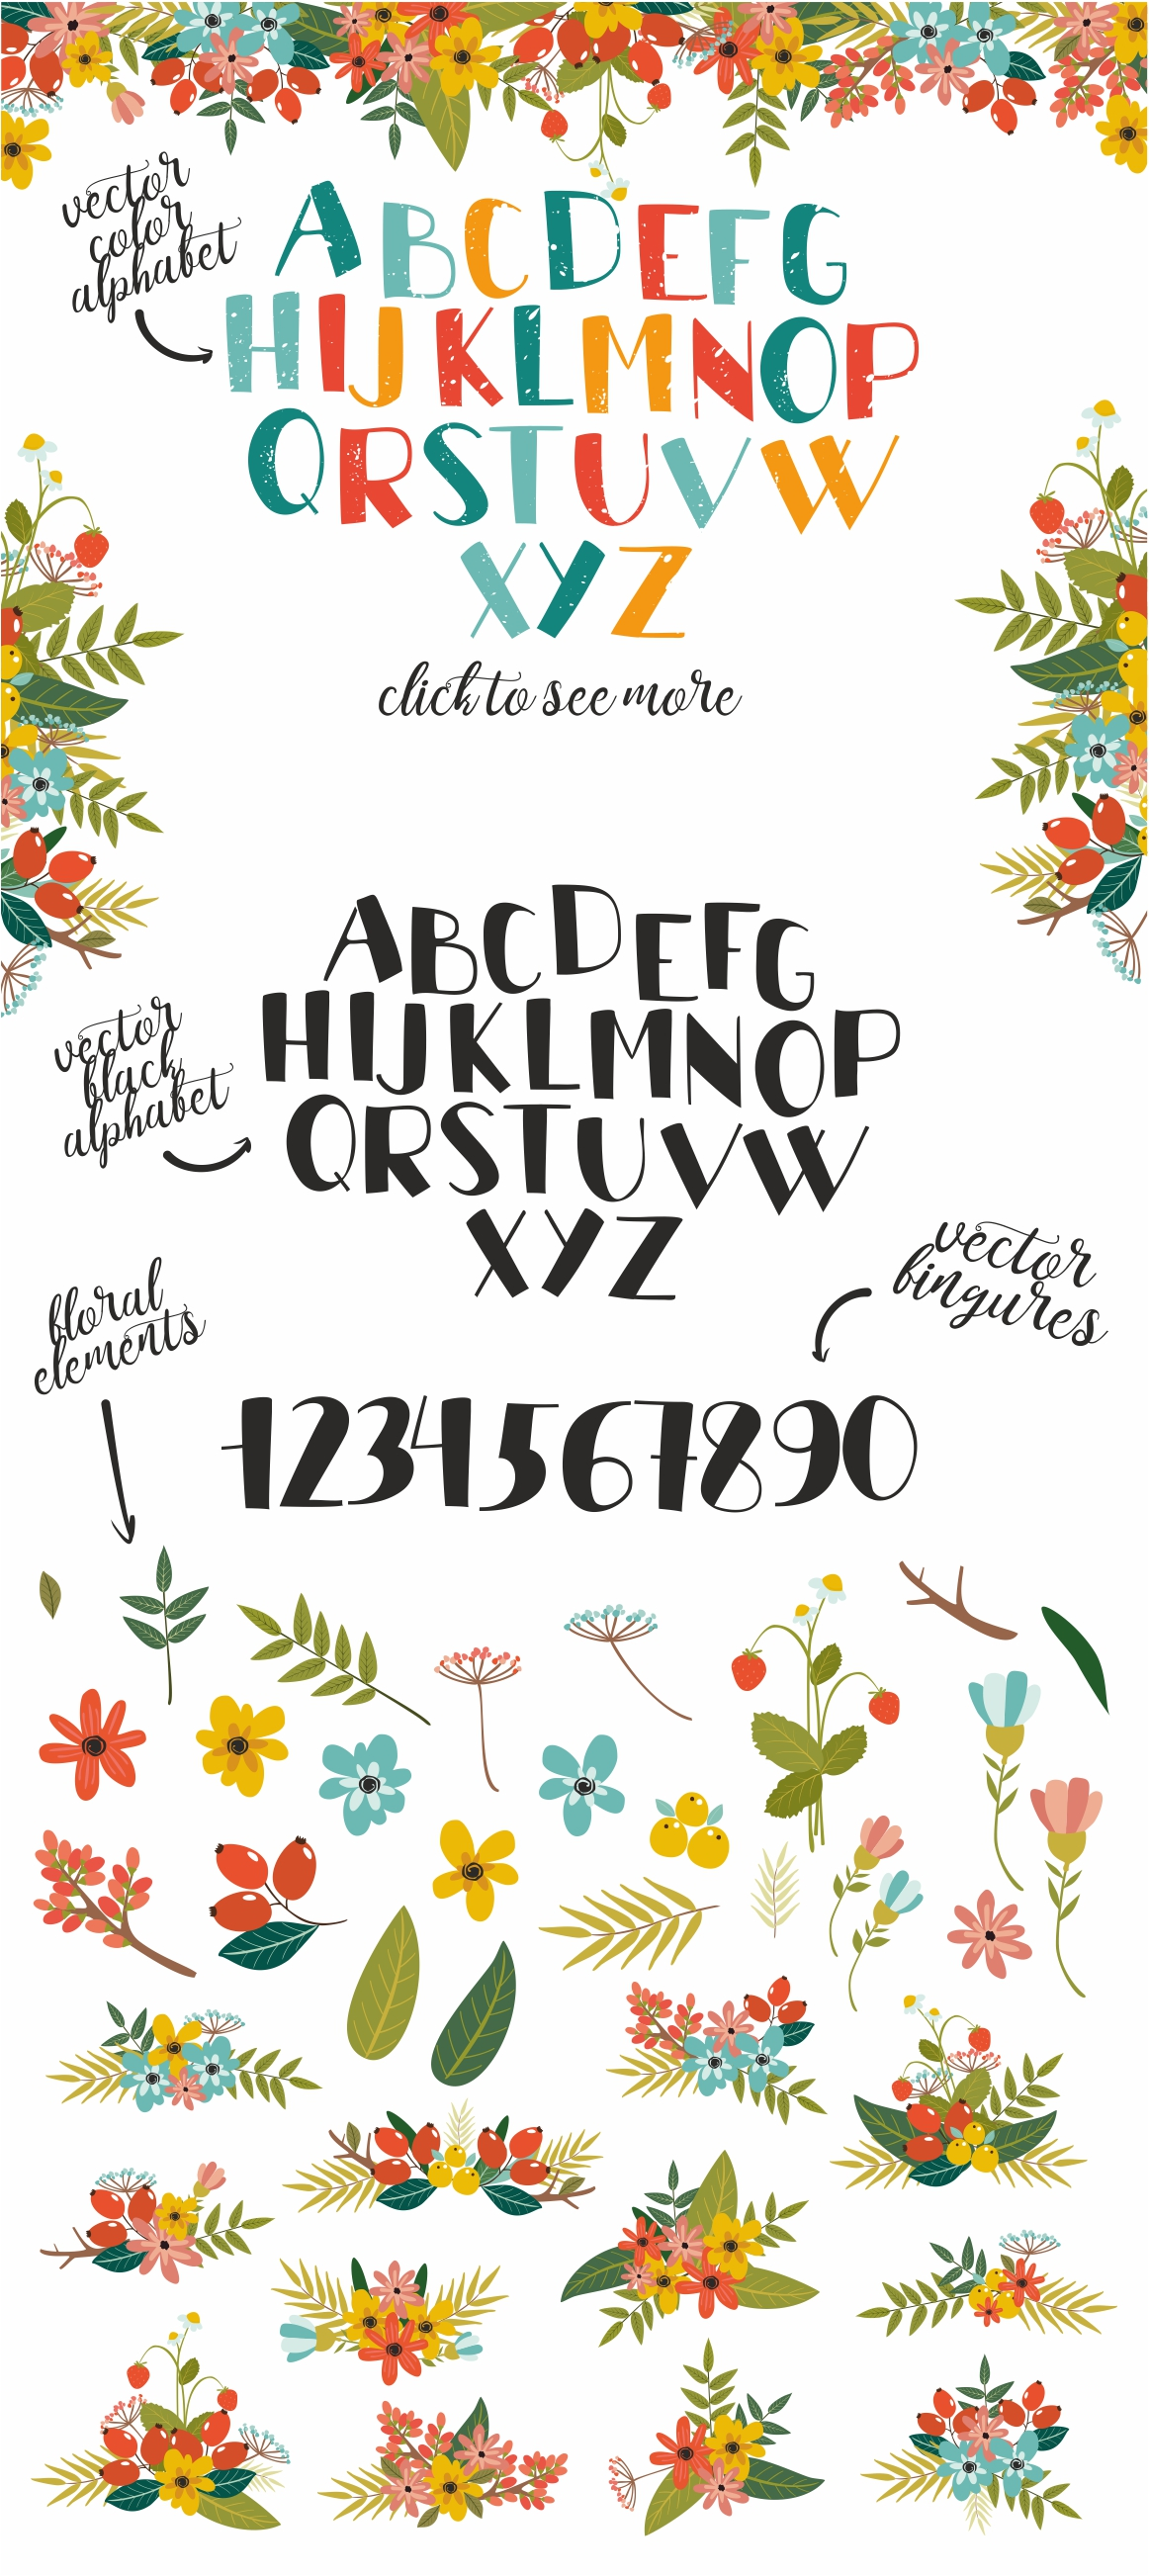 Vectot alphabet and floral elements example image 4